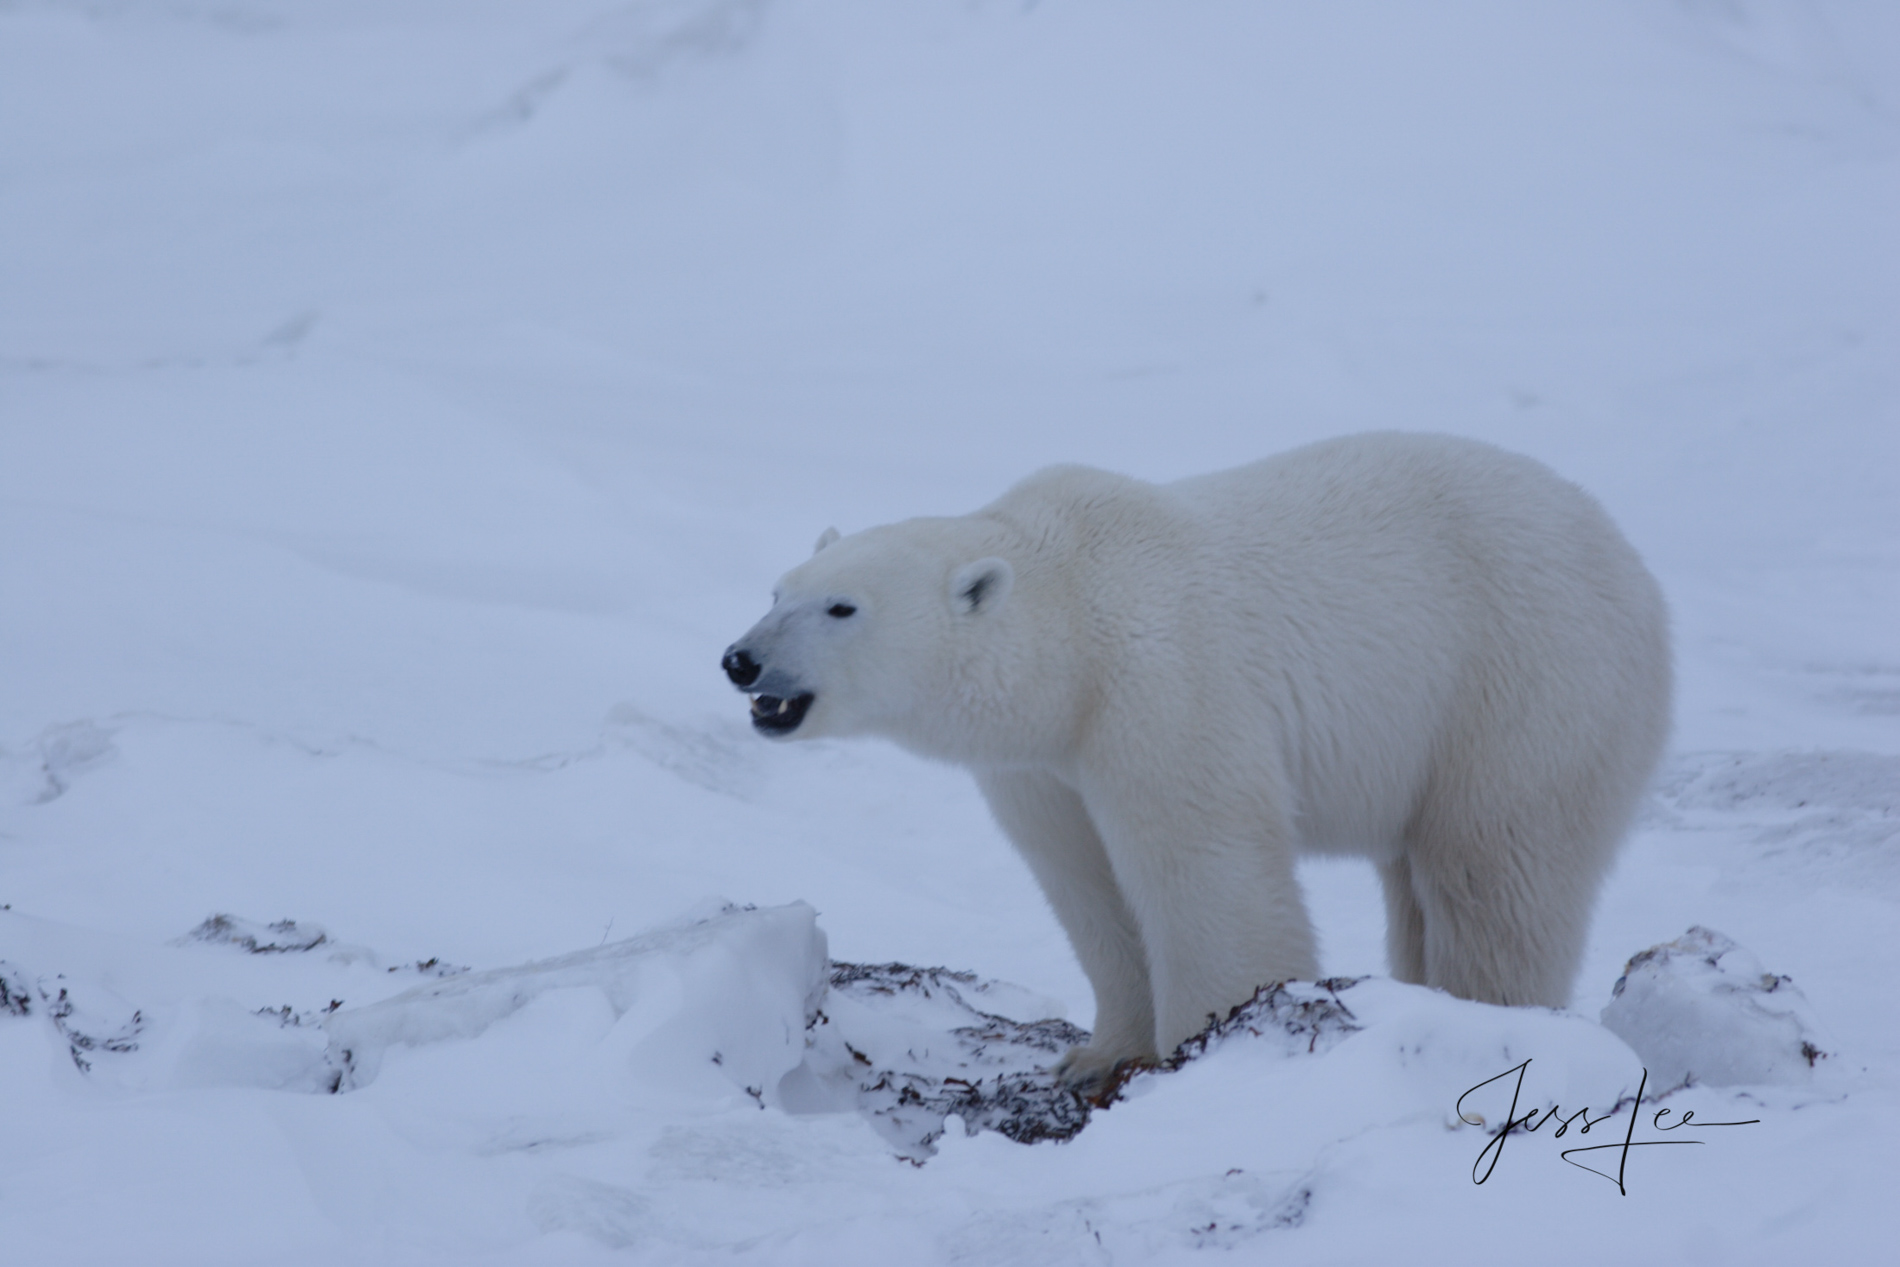 Canada Polar bear in warming Hudsons bay, arctic, arctic Canada, bear, bears, churchill, mammal, Manitoba, marine, polar, polar bear, polar bears, photo